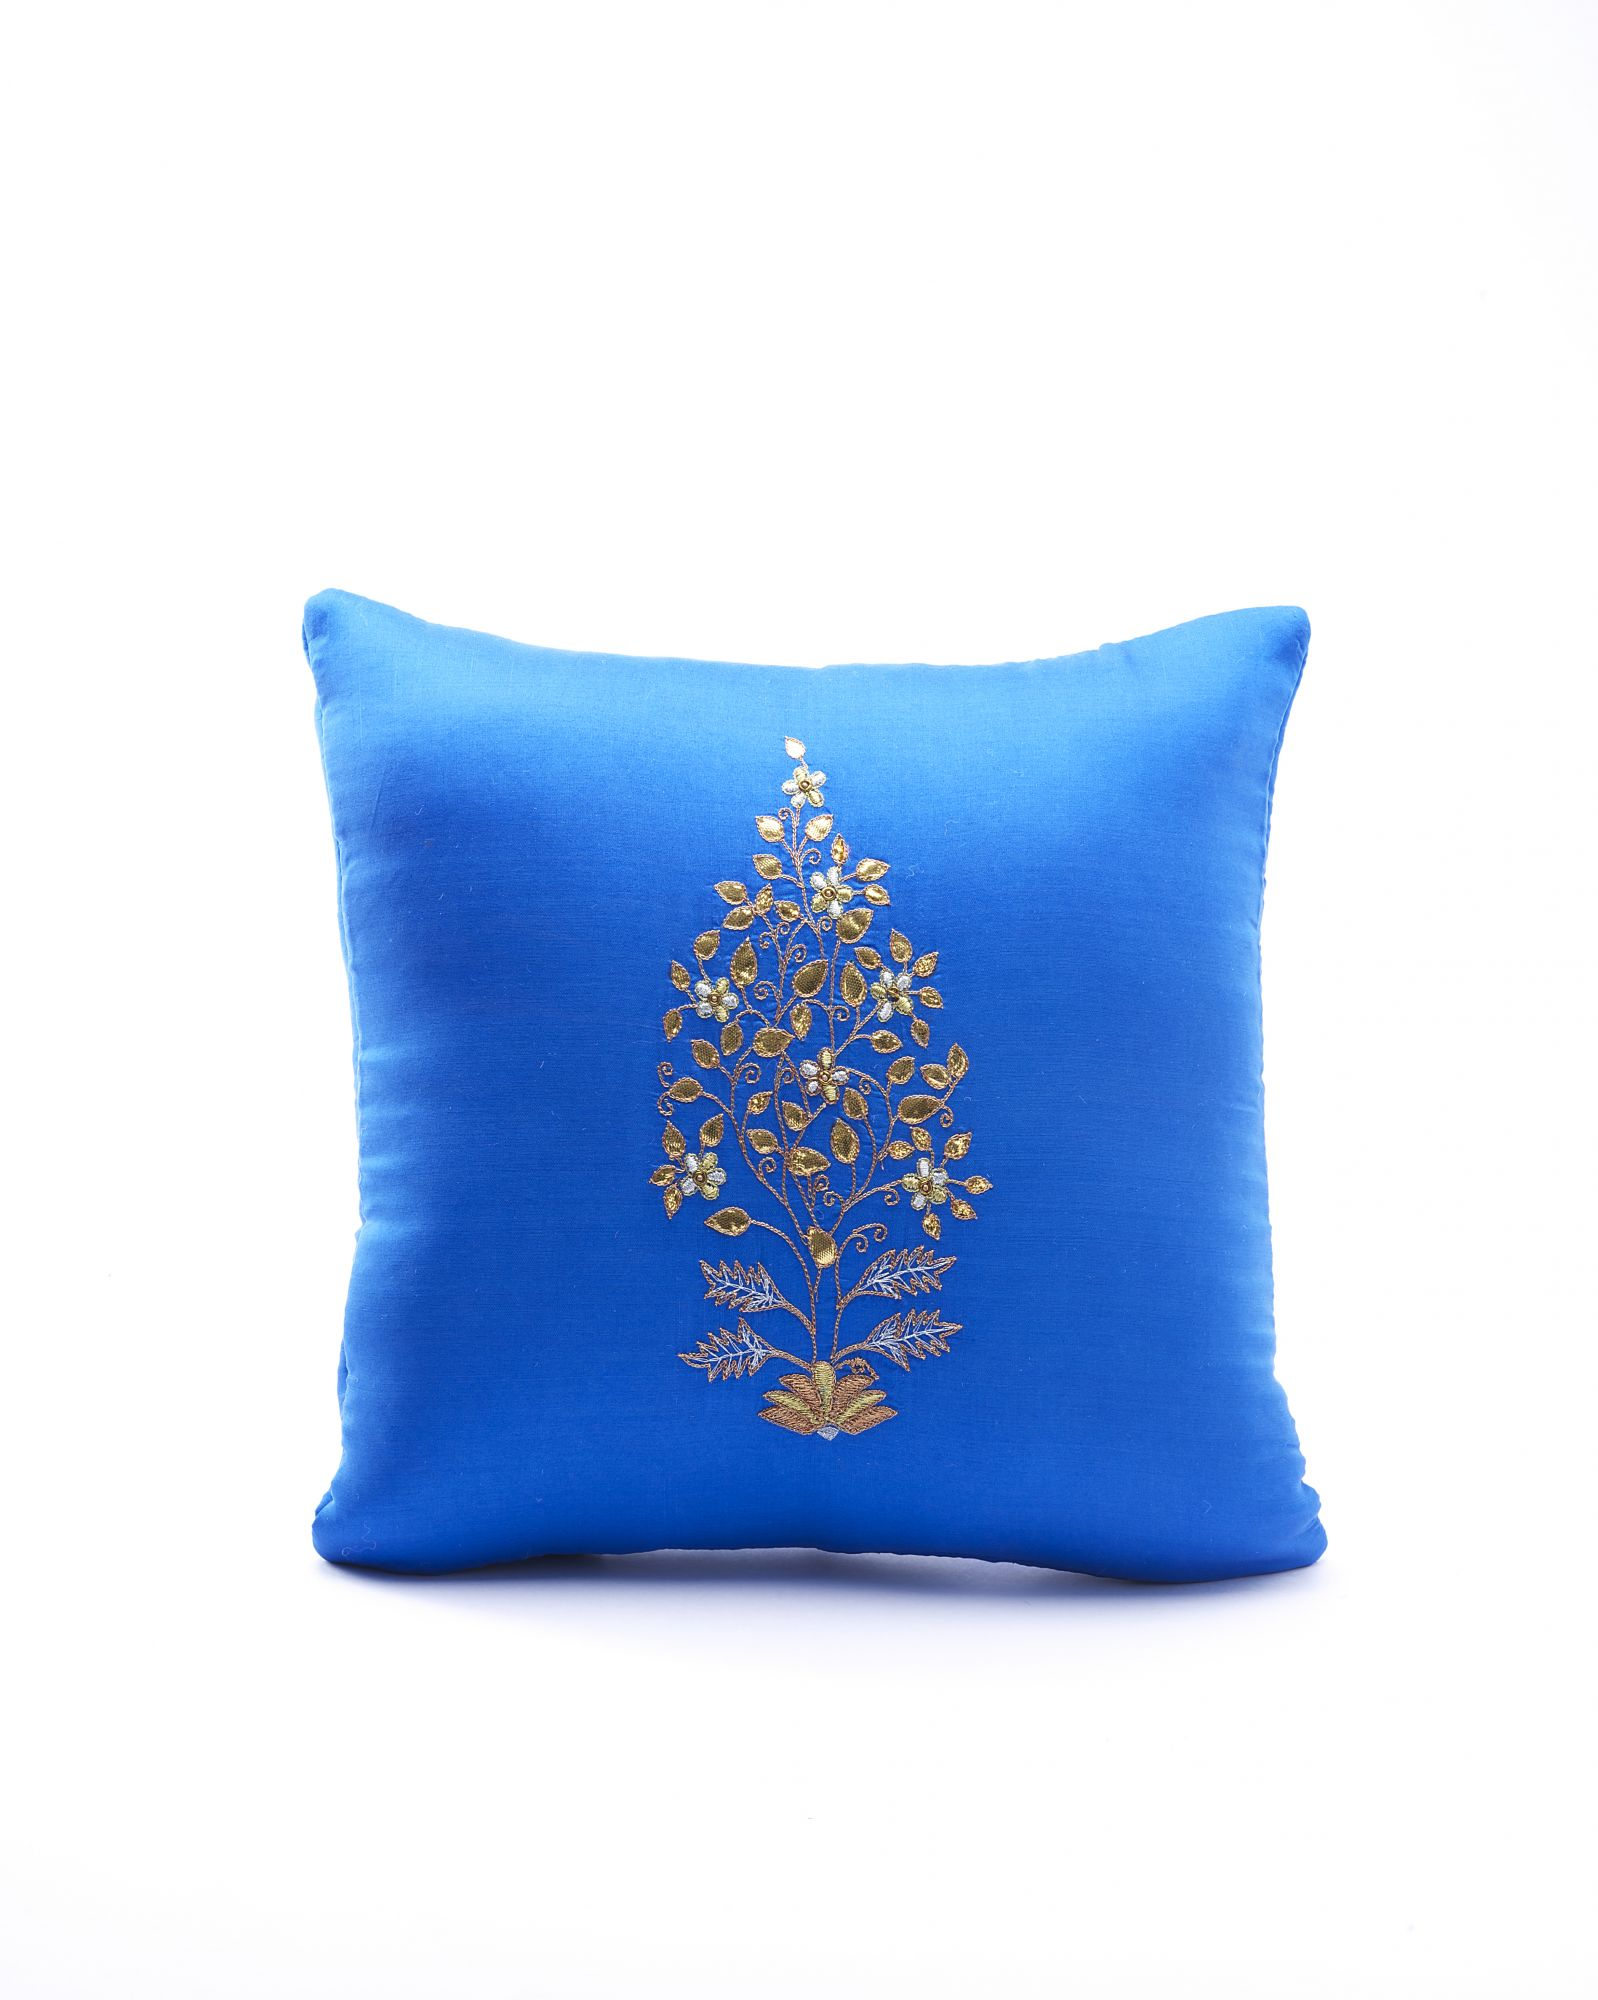 Tree Boota Cushion Cover